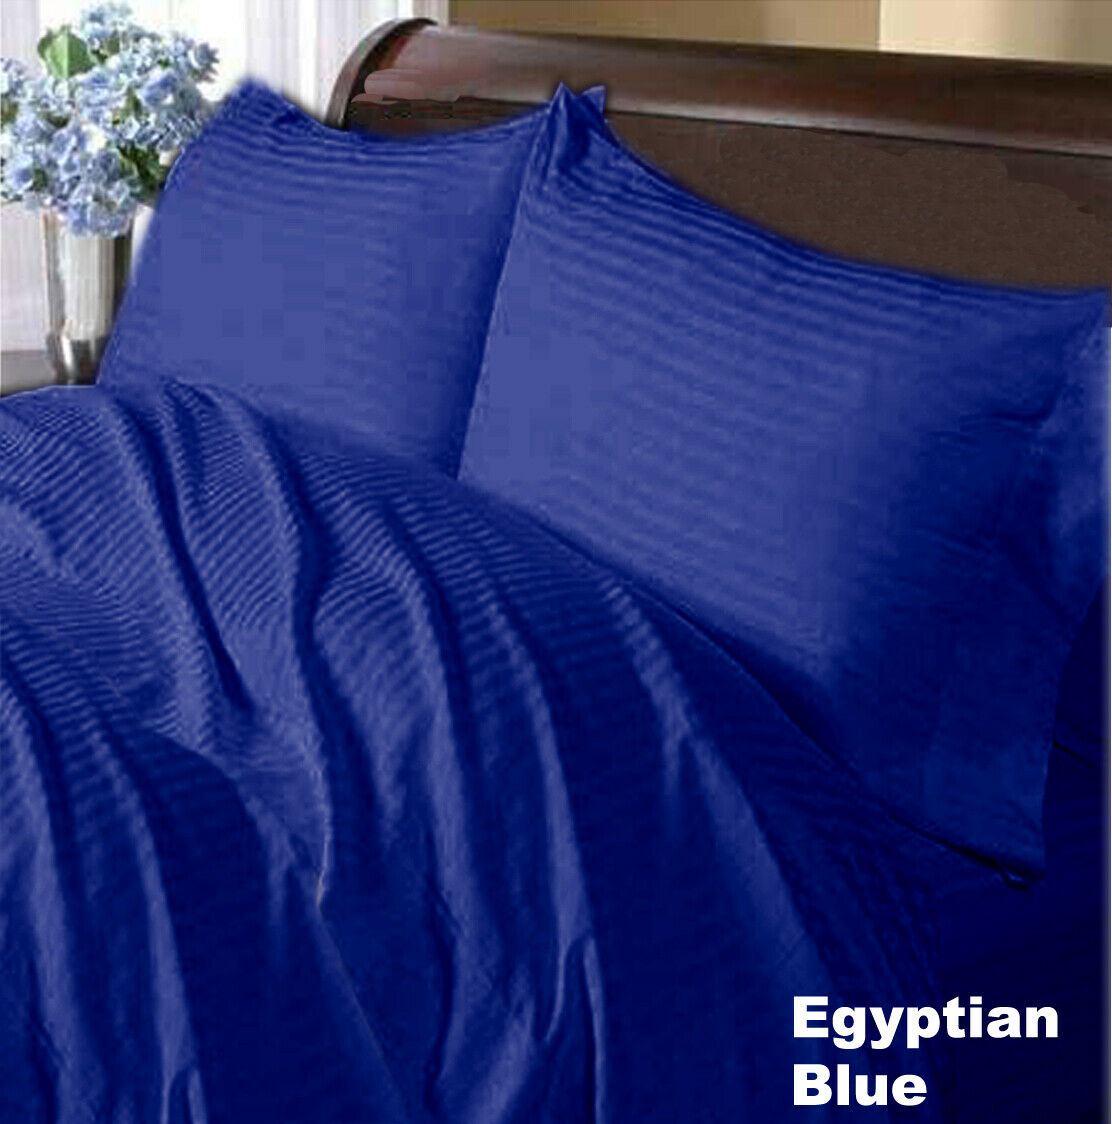 Best Bedding Items 1200 Thread Count Egyptian Cotton Egyptian blu Strip AU Dimensione